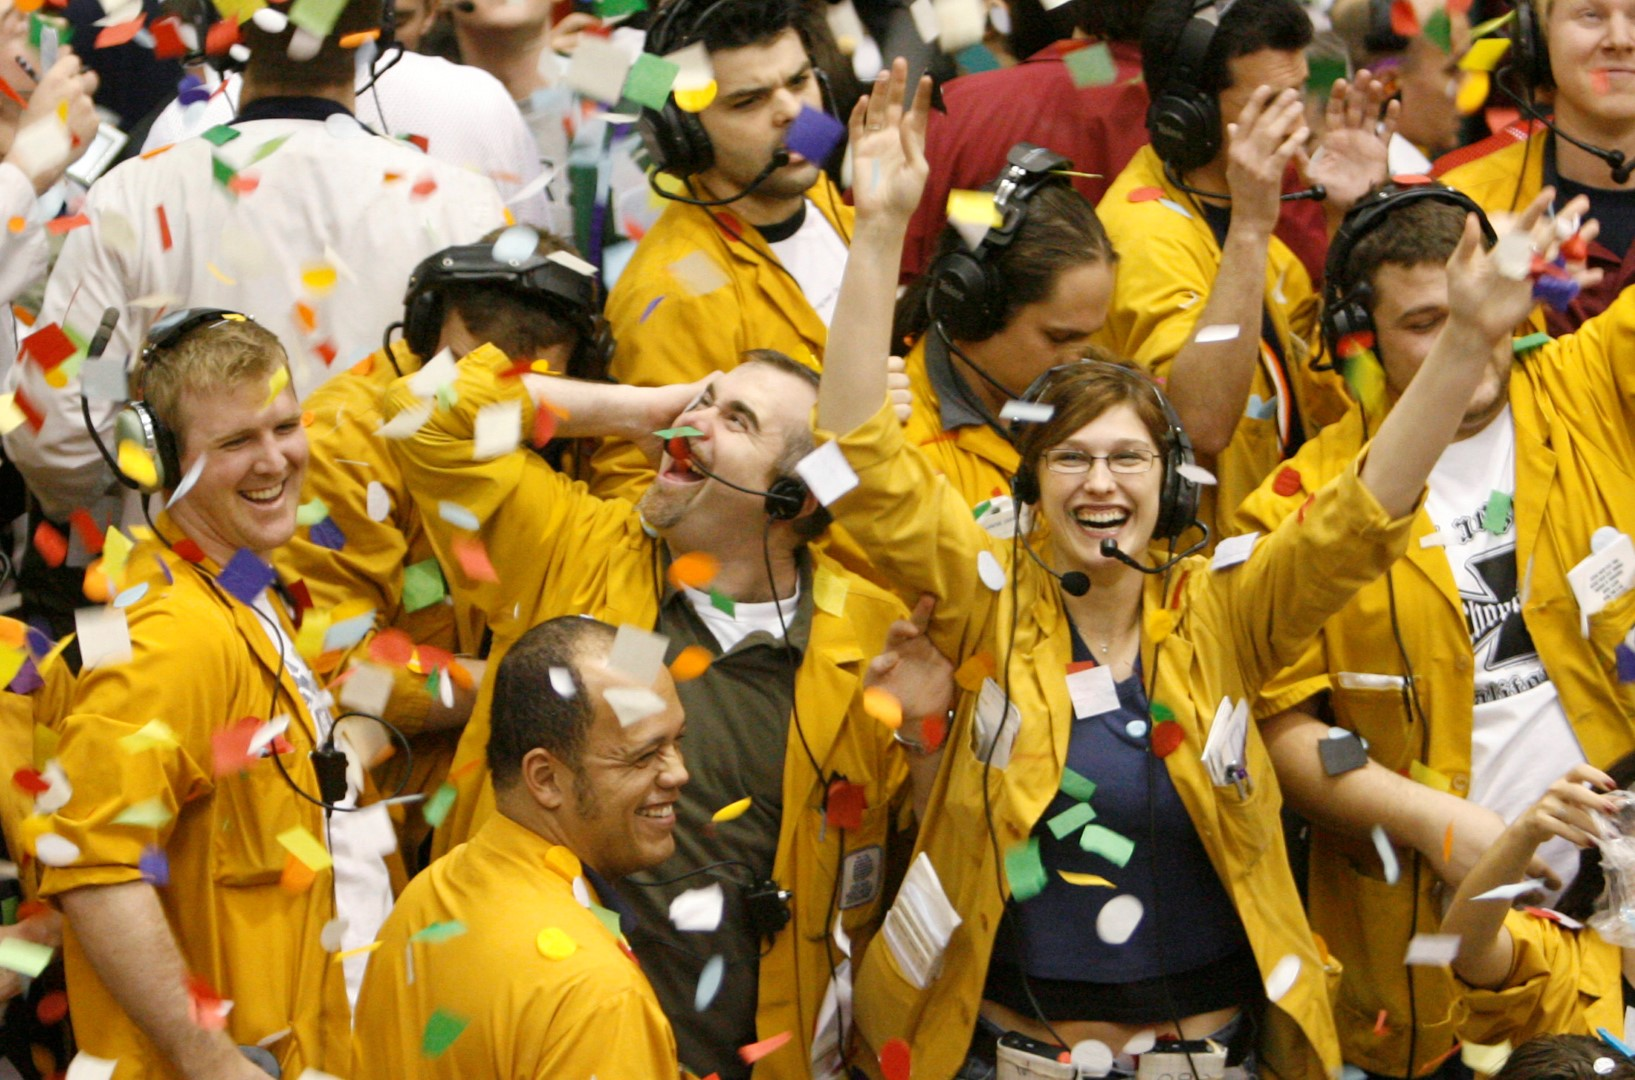 Clerks and traders in the Euro Dollar pit at the Chicago Mercantile Exchange celebrate the New Year at the close of trading on the last business day of the year December 29, 2006. REUTERS/John Gress (UNITED STATES) - GM1DUGRBXNAA